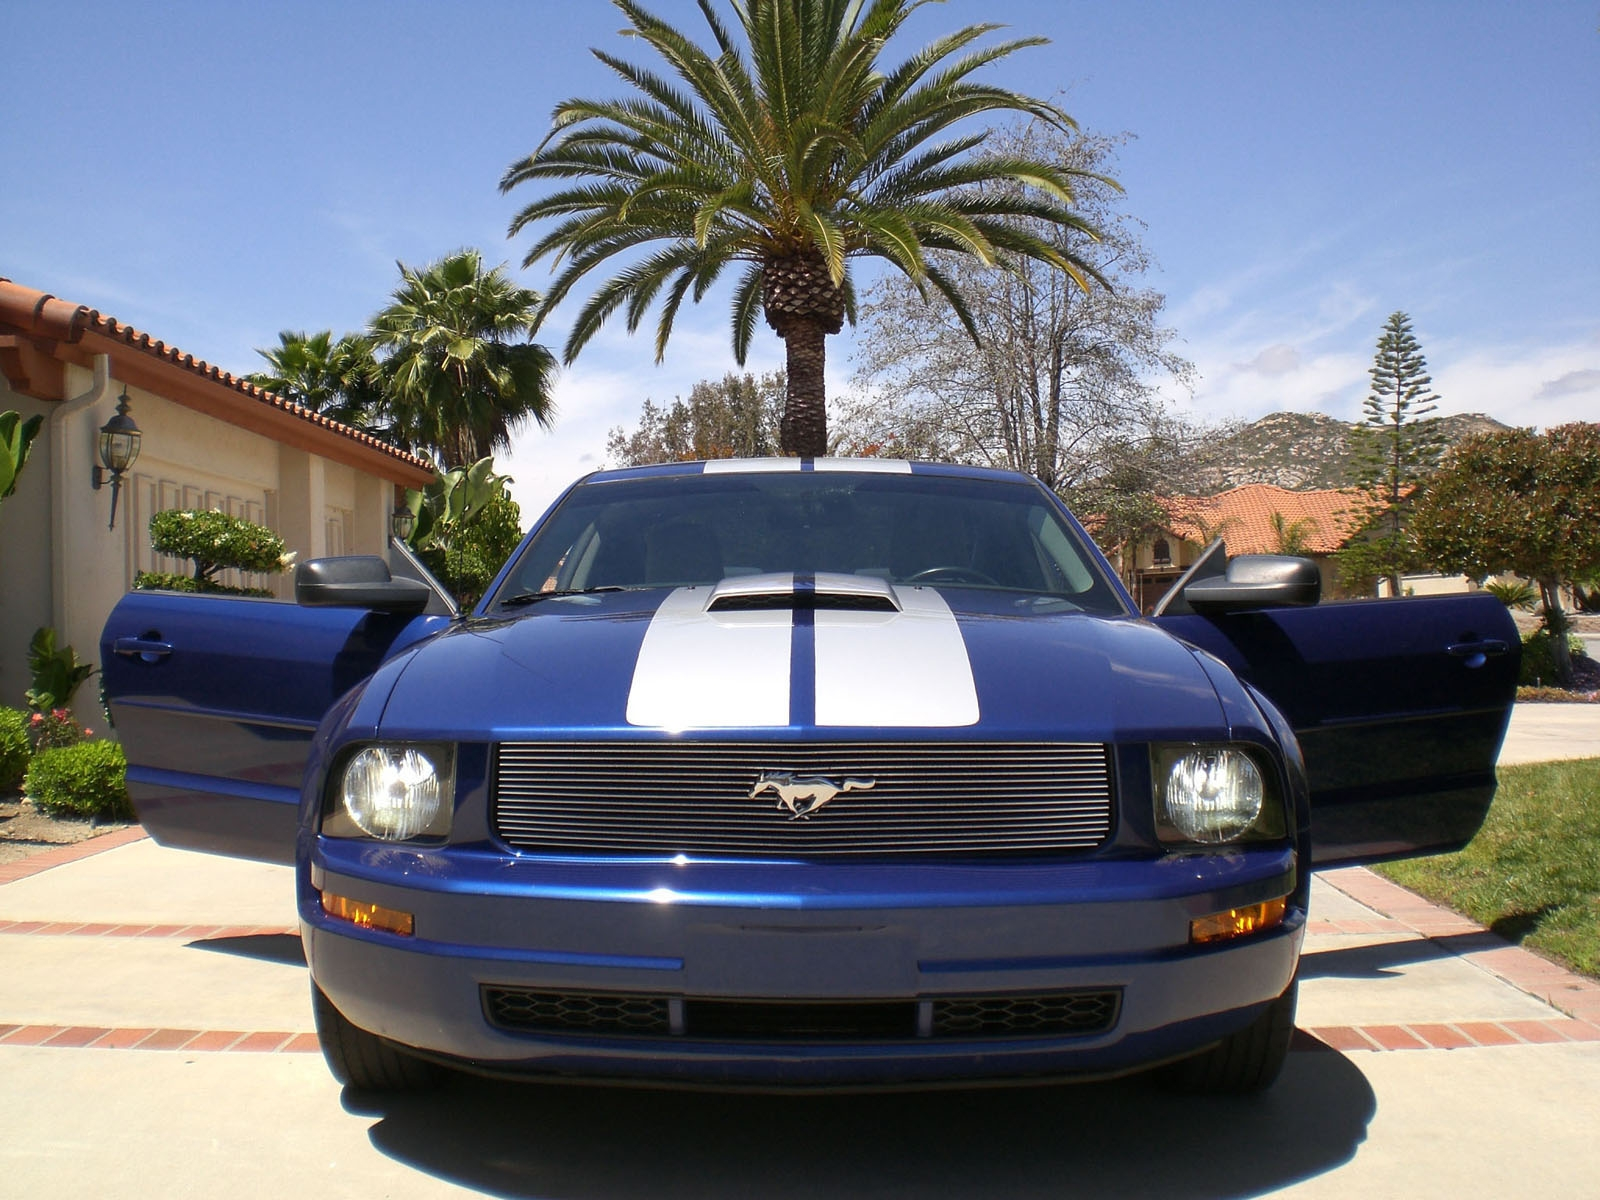 CaliPhattie 2005 Ford Mustang 7271699